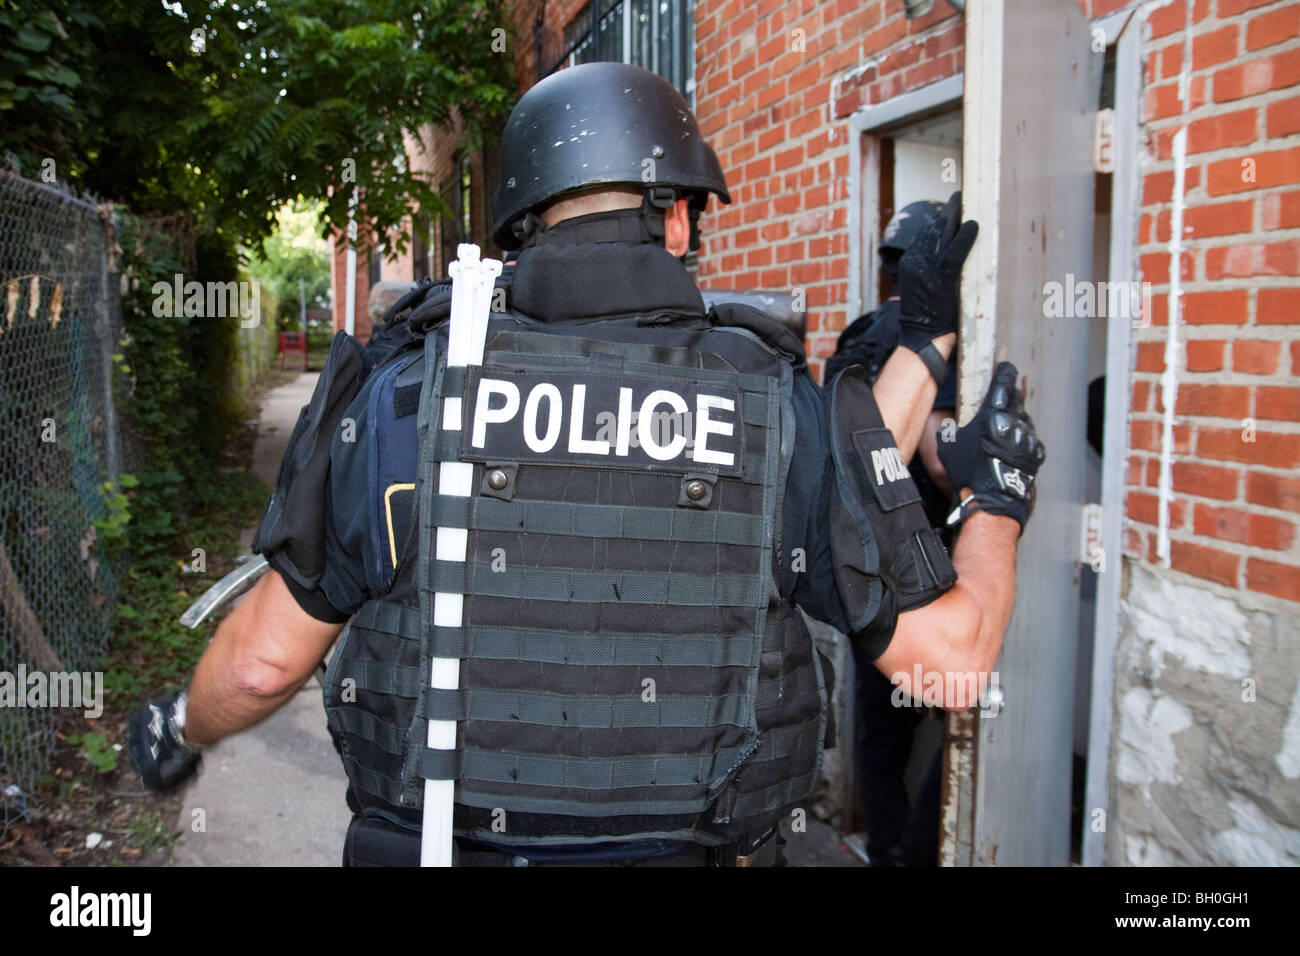 Police tactical team getting ready to enter apartment building to serve a high-risk drug related search warrant. - Stock Image